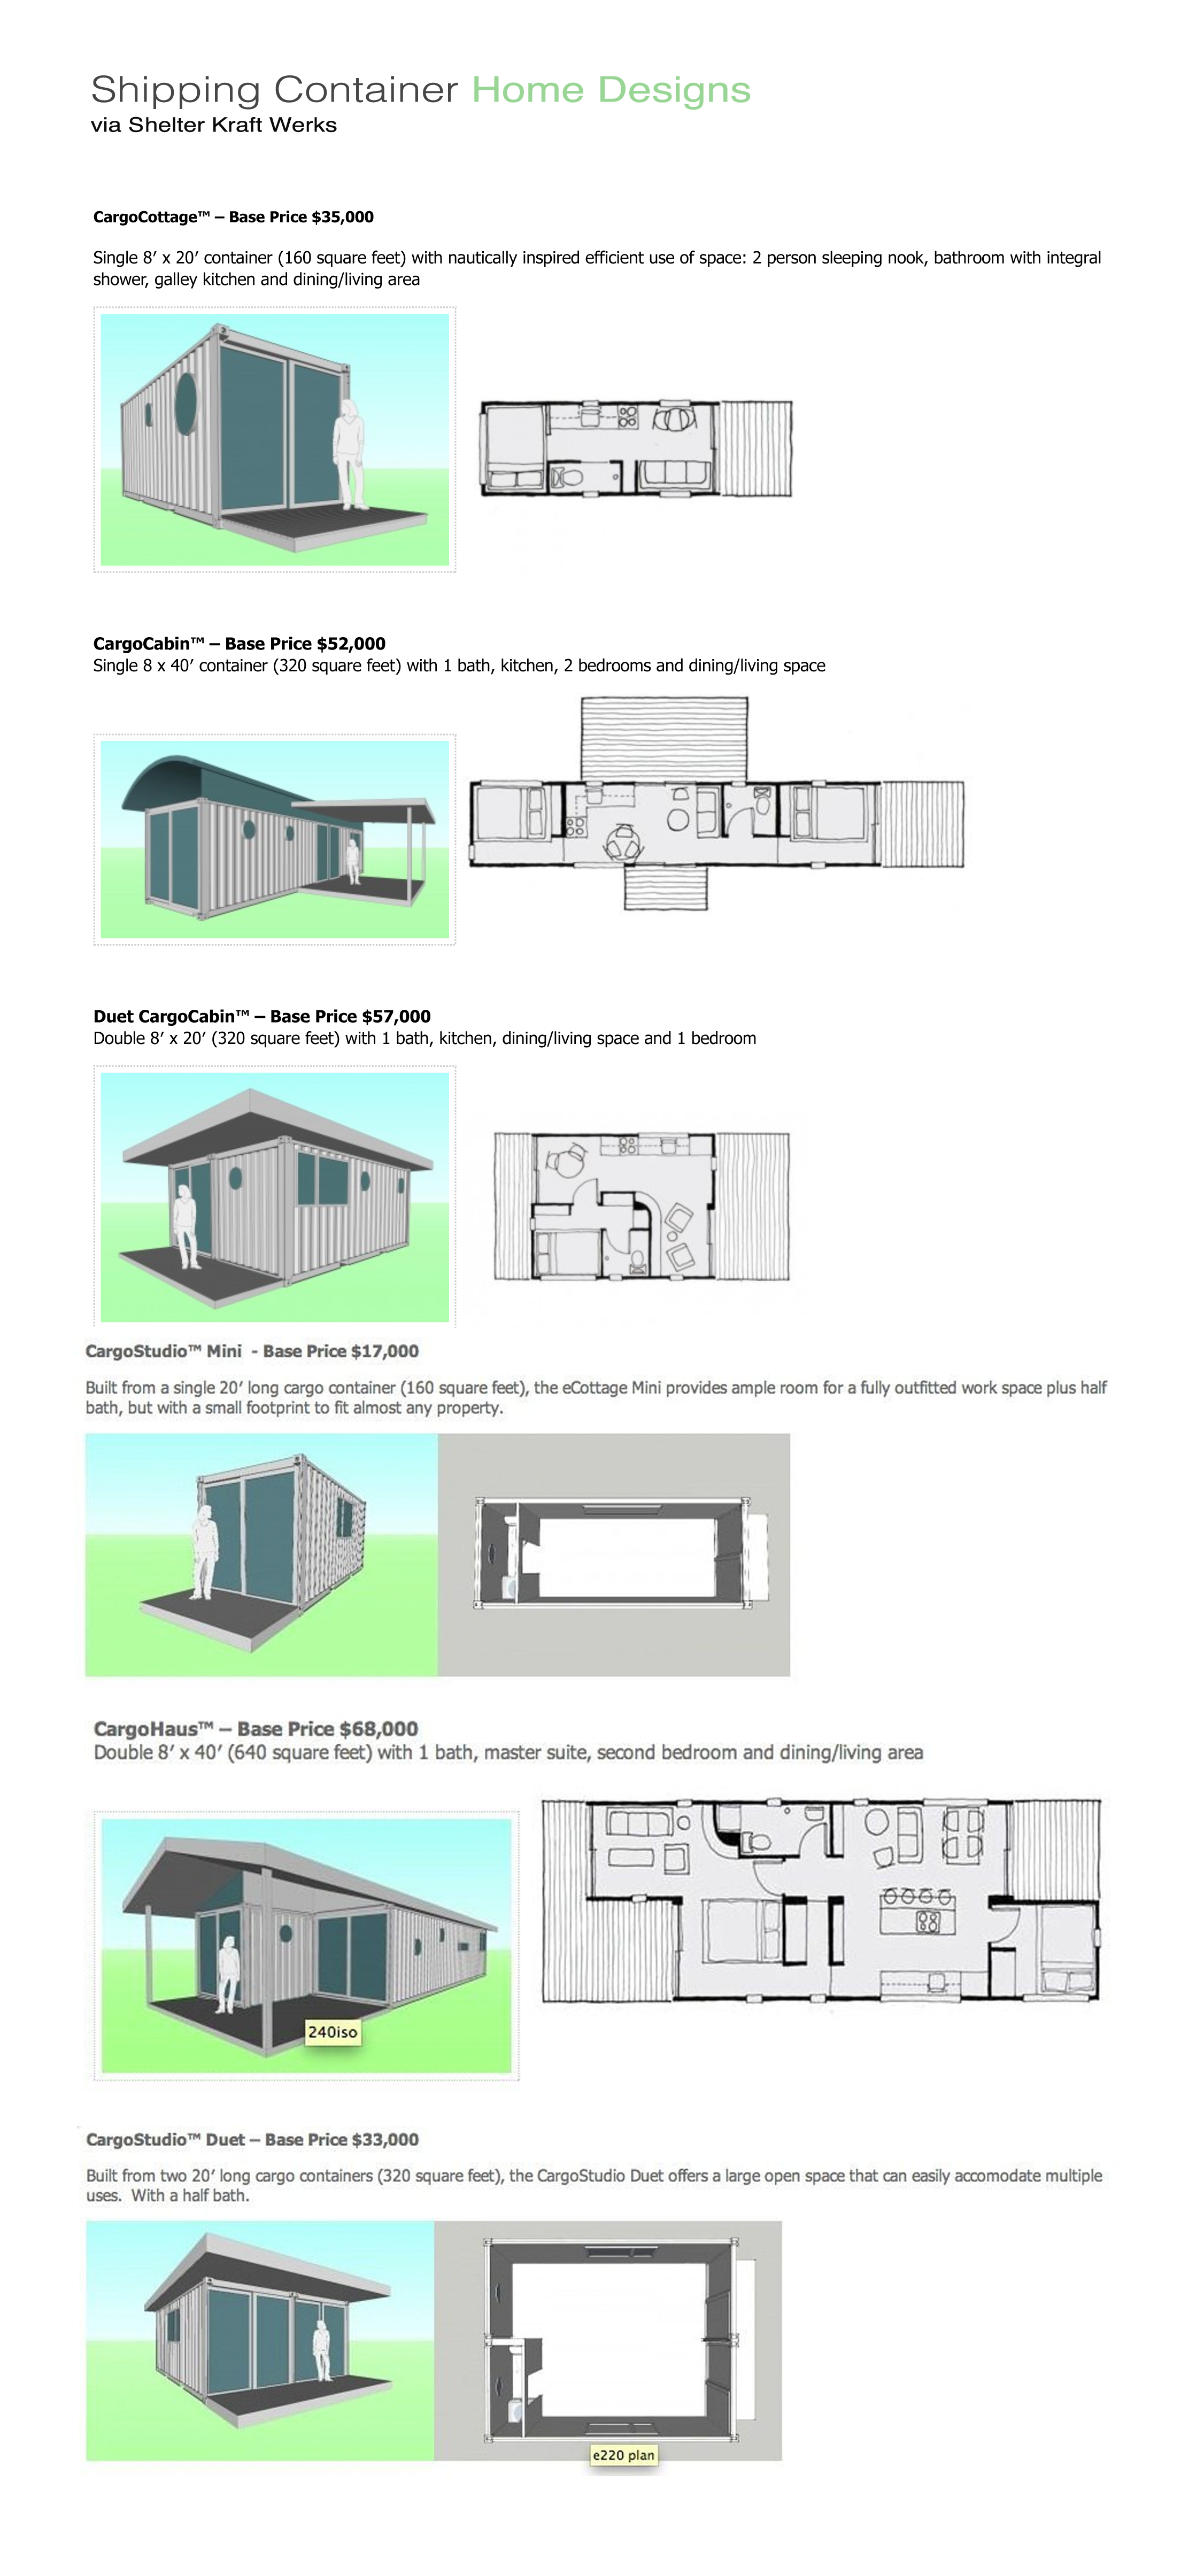 Best Kitchen Gallery: How To Build Amazing Shipping Container Homes Shelter Seattle And of Shipping Container Bath on rachelxblog.com